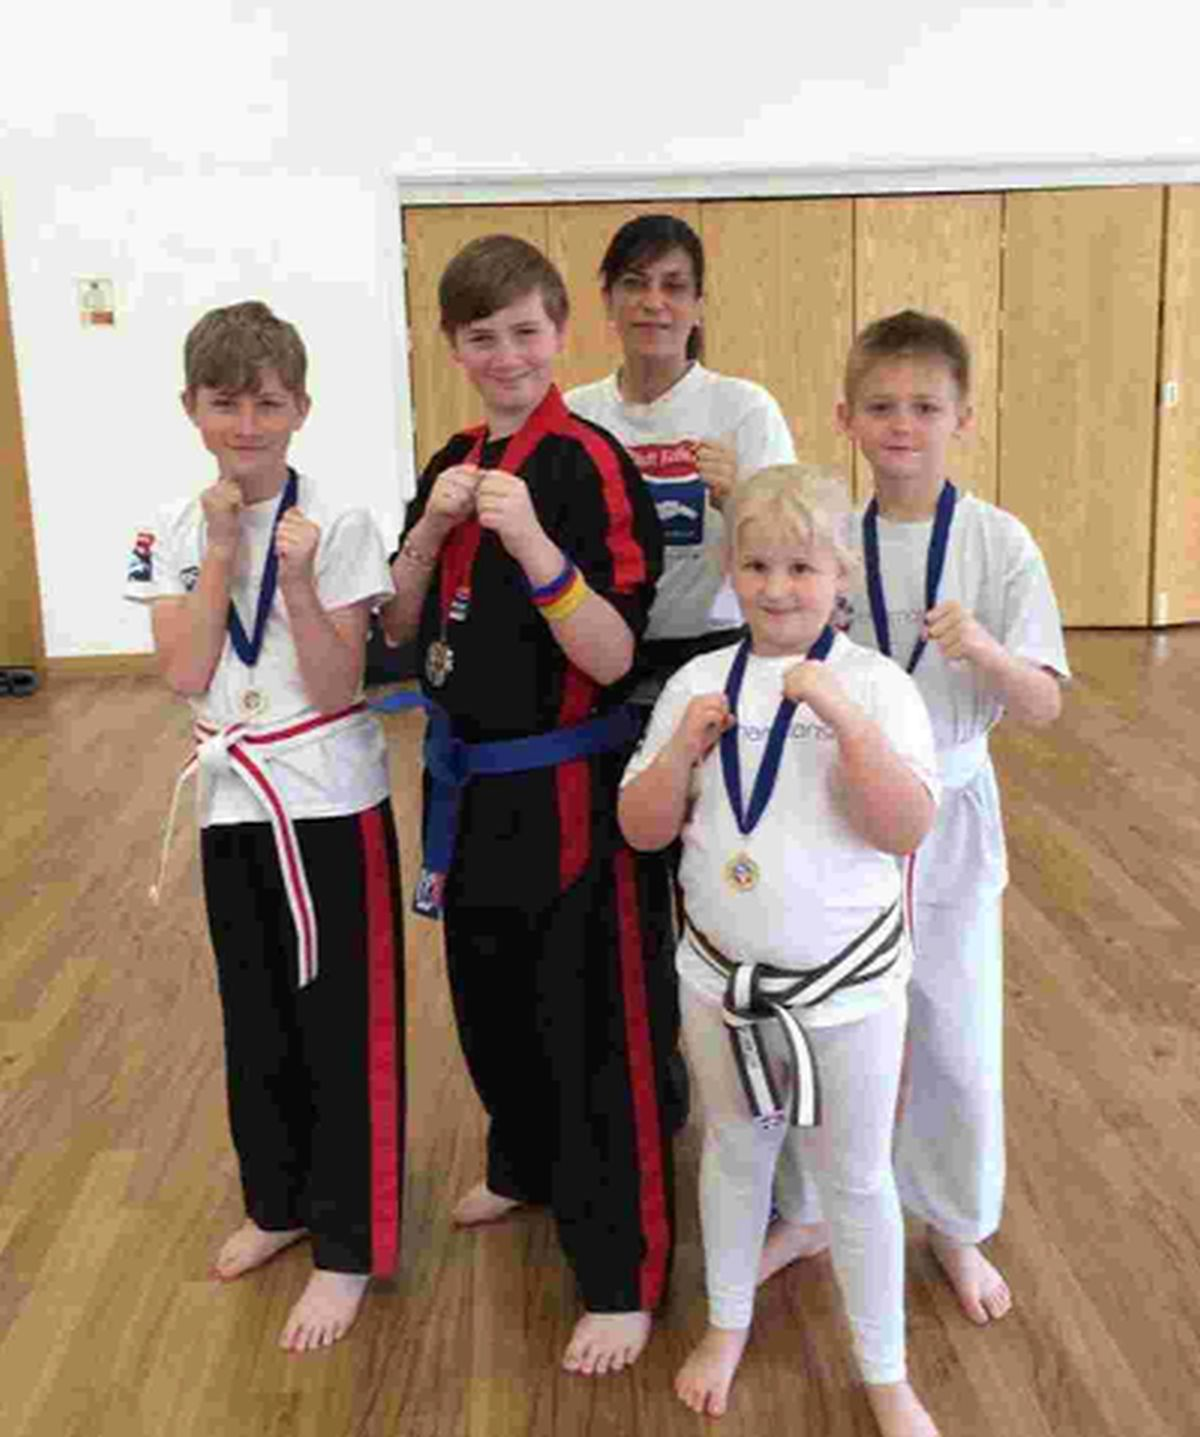 SCHOOL SKILLS: From left, Tyler Nottley, Aiden Cooper, Charlotte Passmore and Jack Gosney, with instructor Lucy Fear